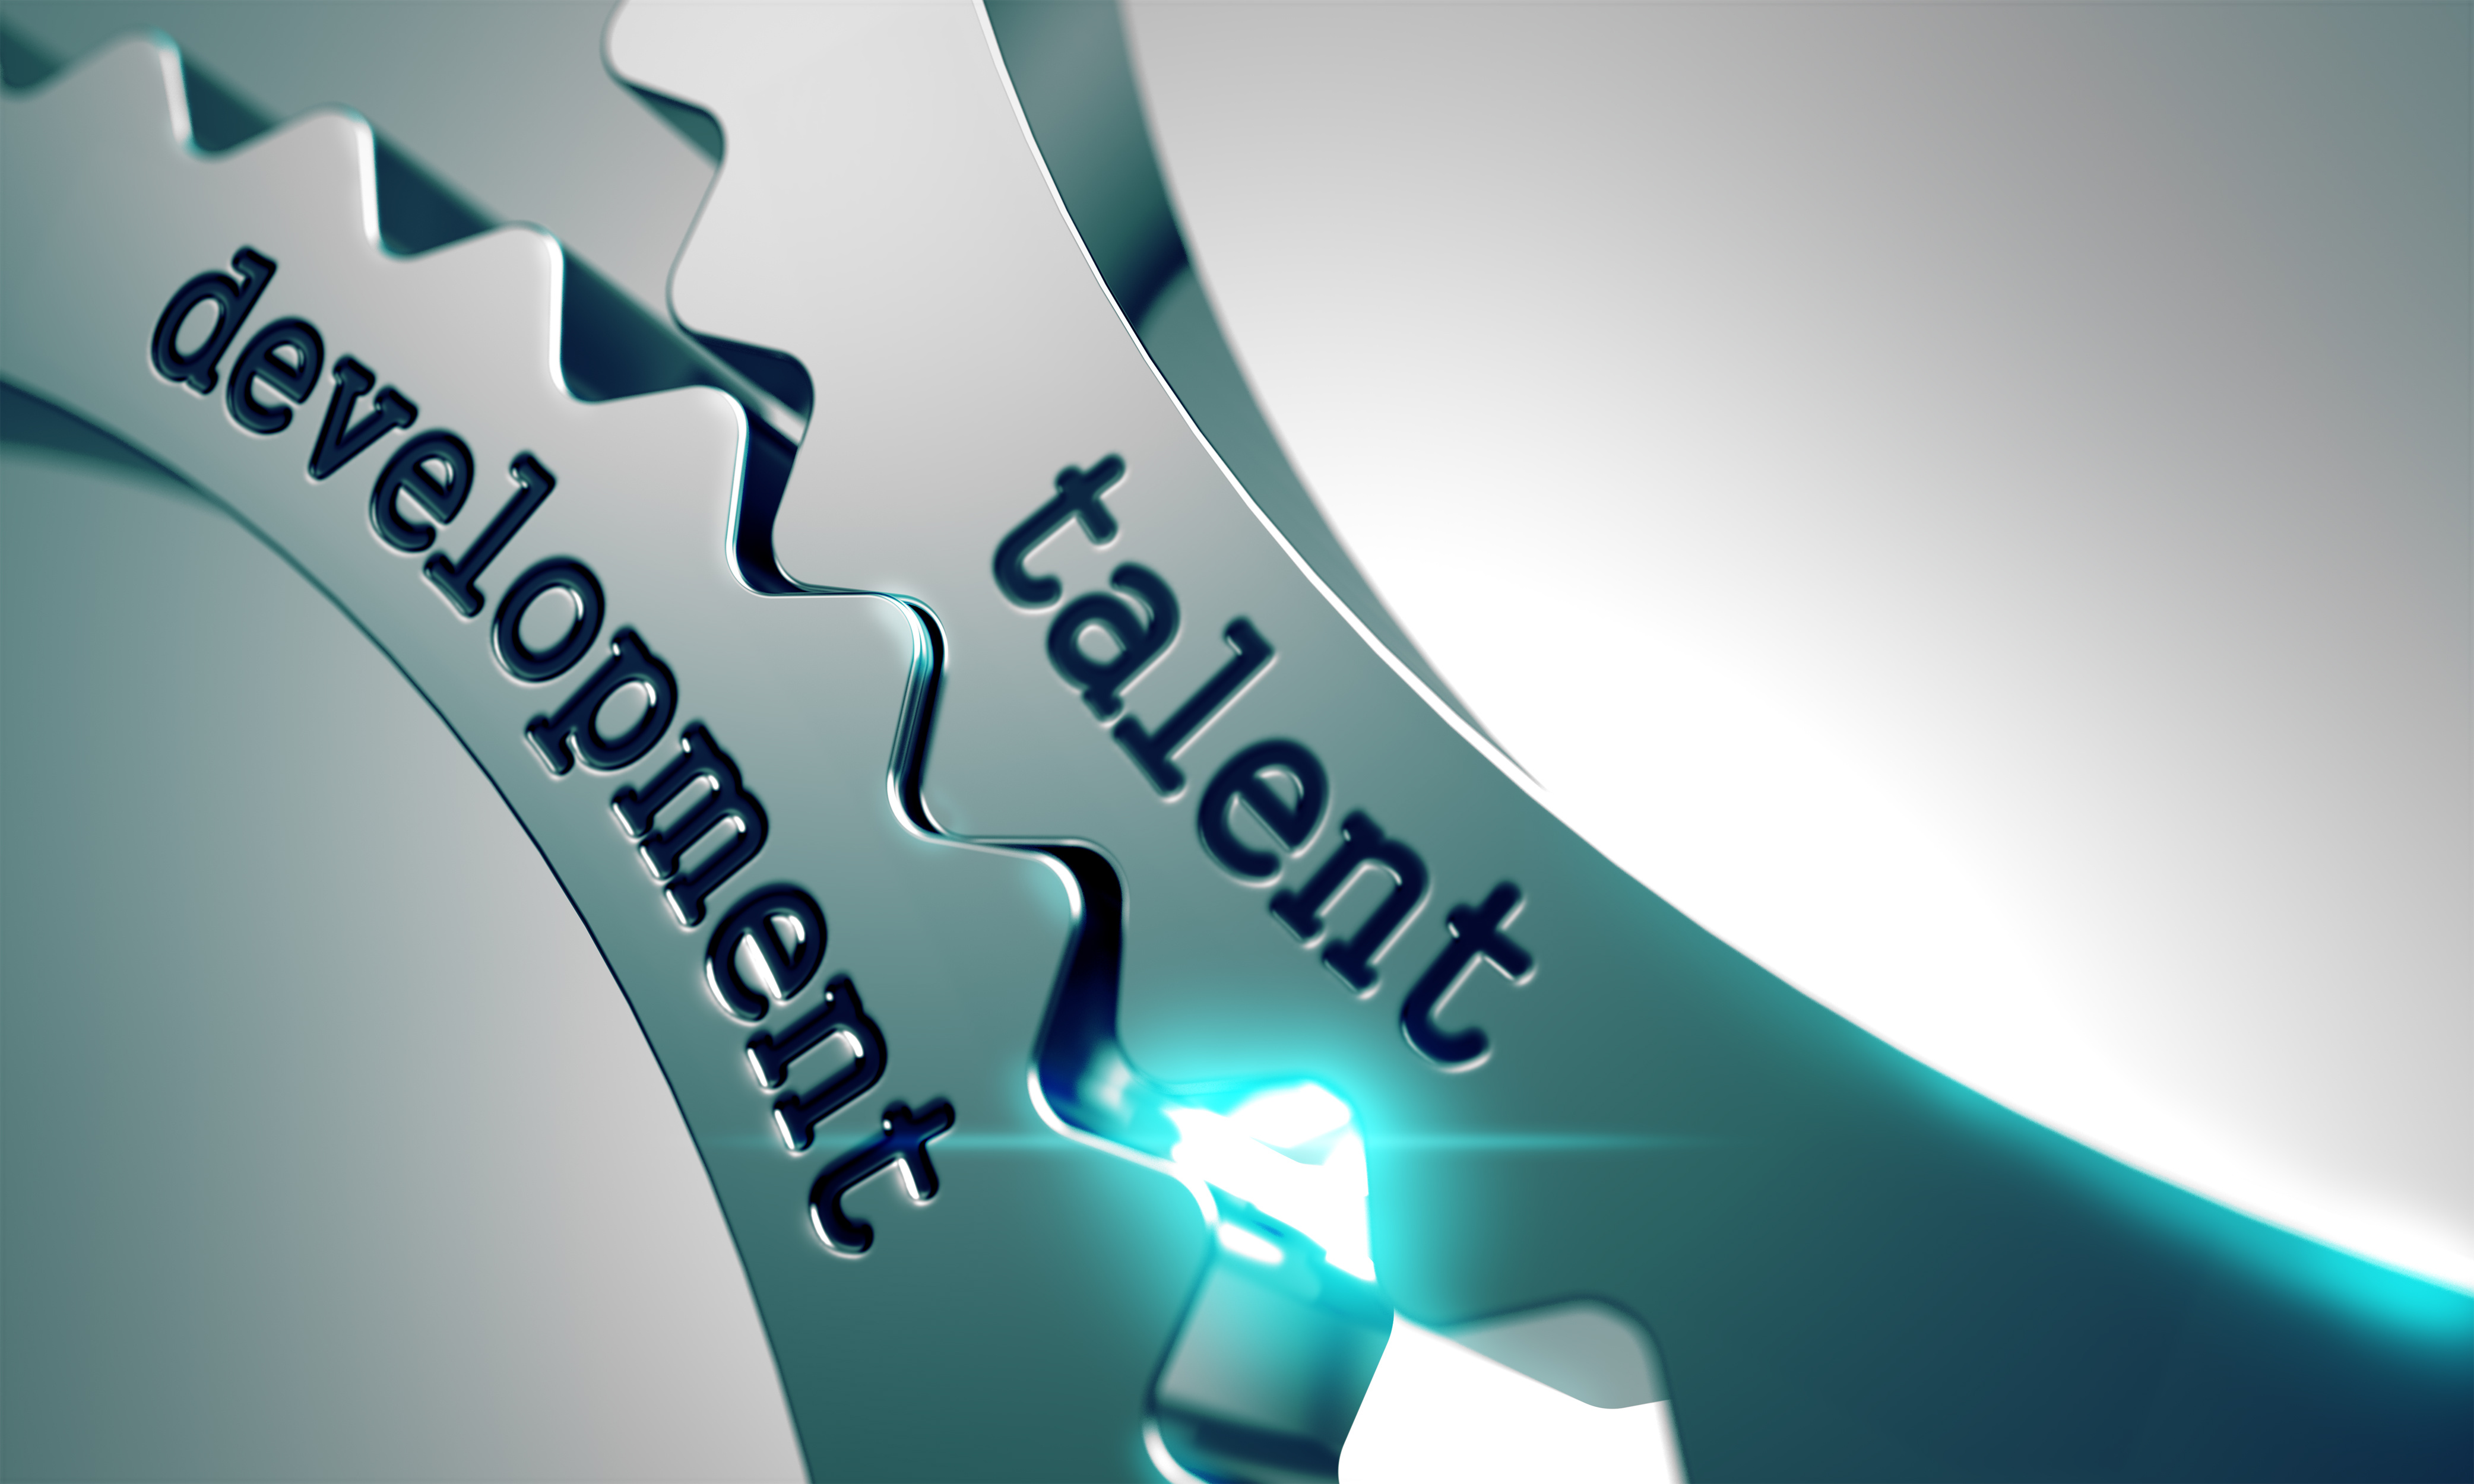 In the talent war the enemy is close at hand